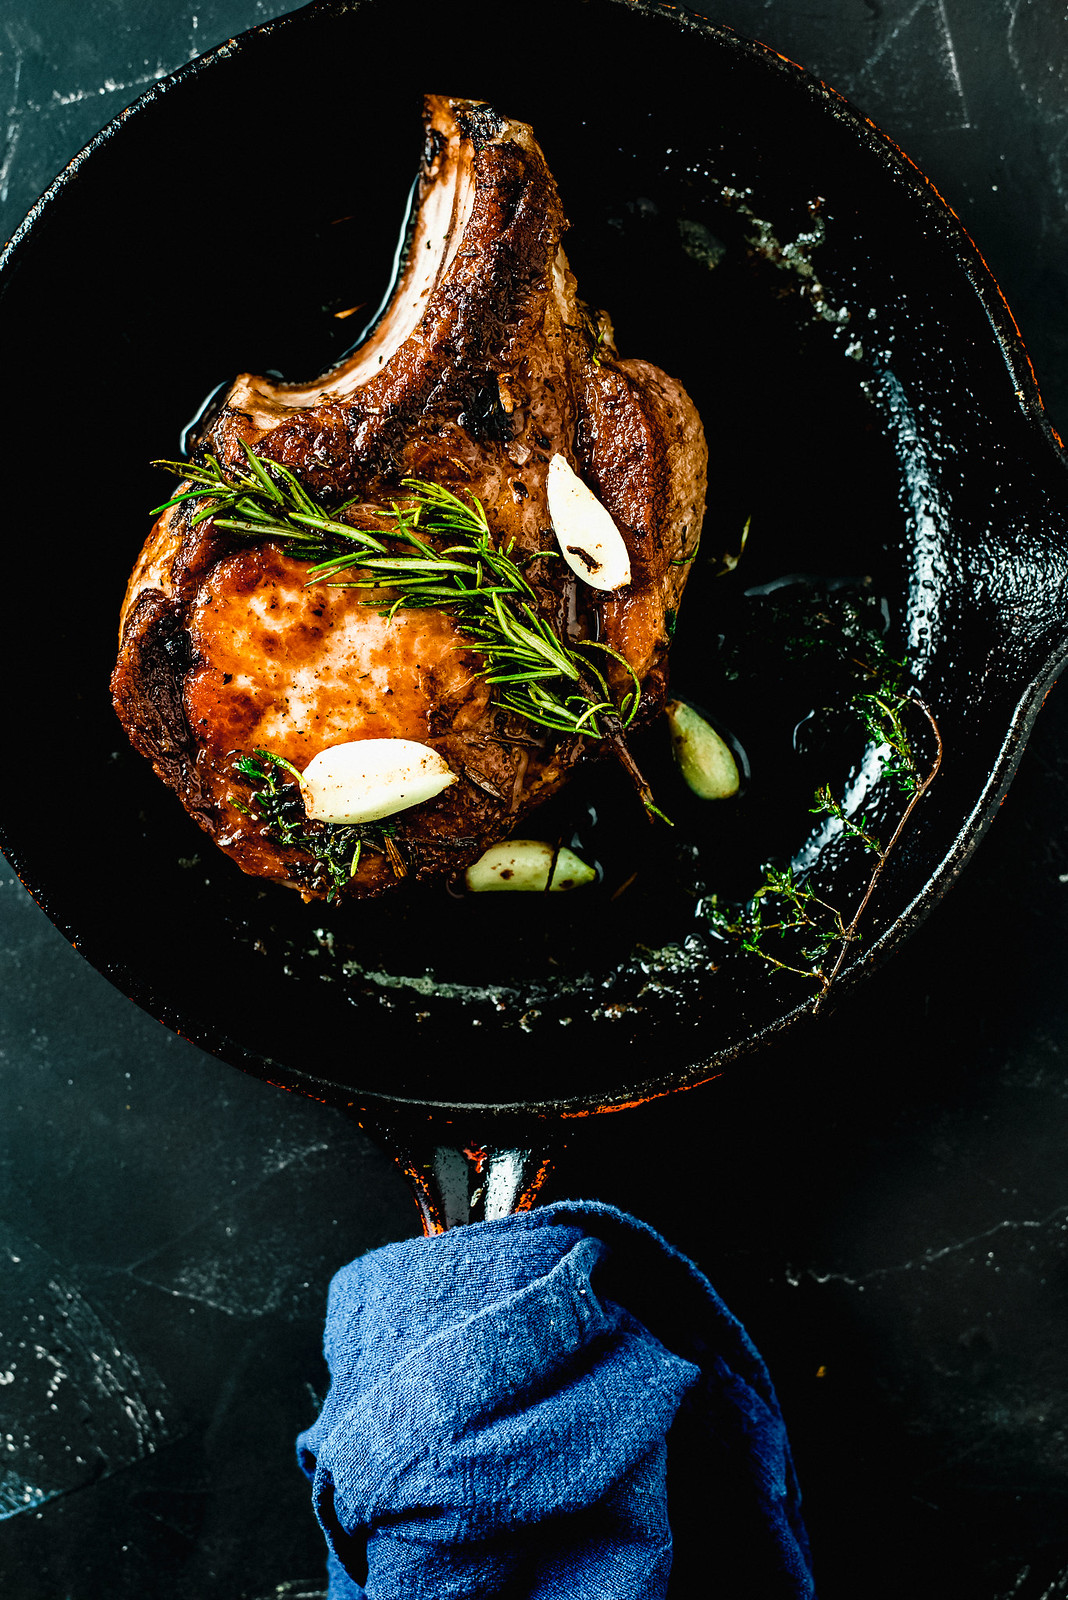 Pan Seared Pork Chops with Garlic and Thyme